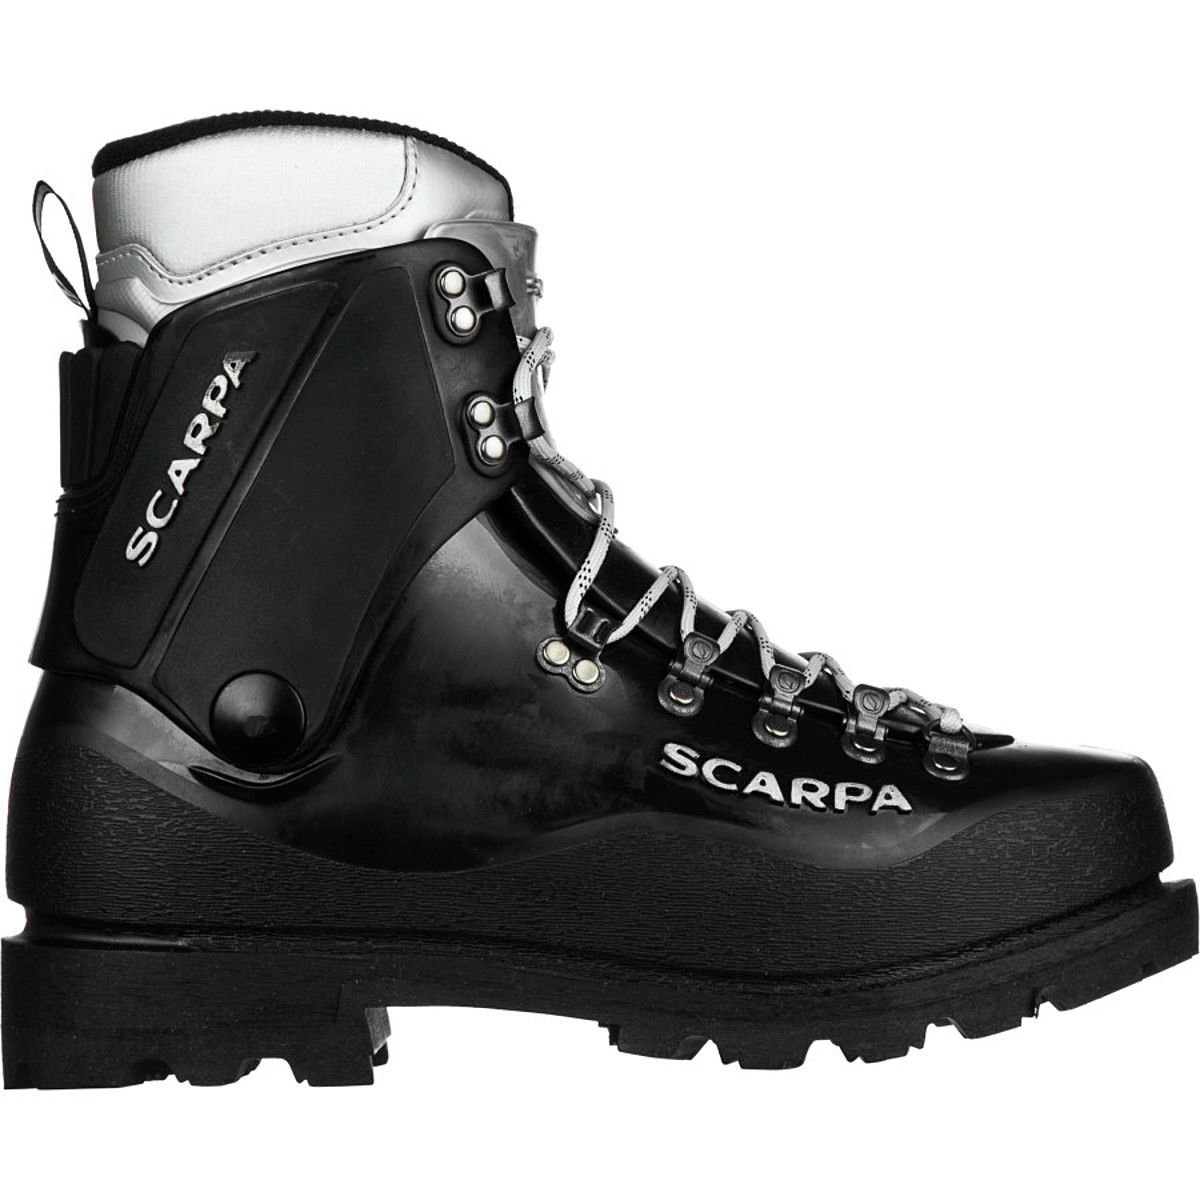 SCARPA Inverno - Mountaineering Boot Boots 06 Black by SCARPA